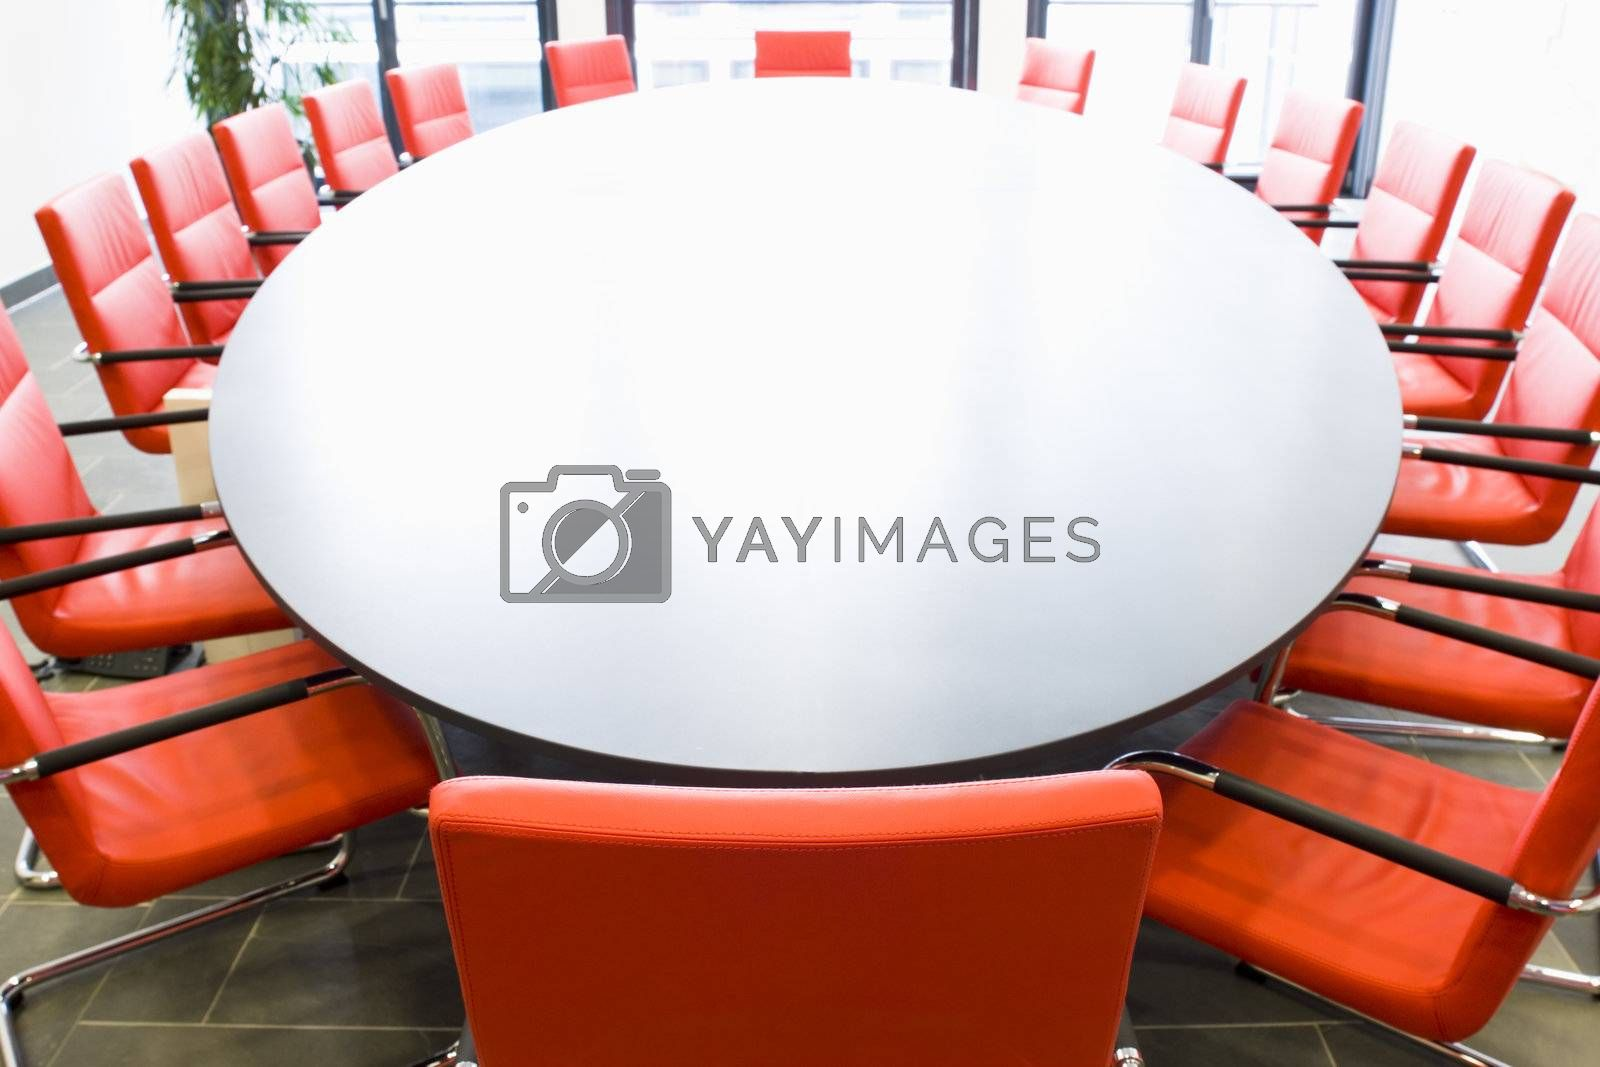 Meeting room with red chairs and oval conference table, Focus on the chair in the foreground